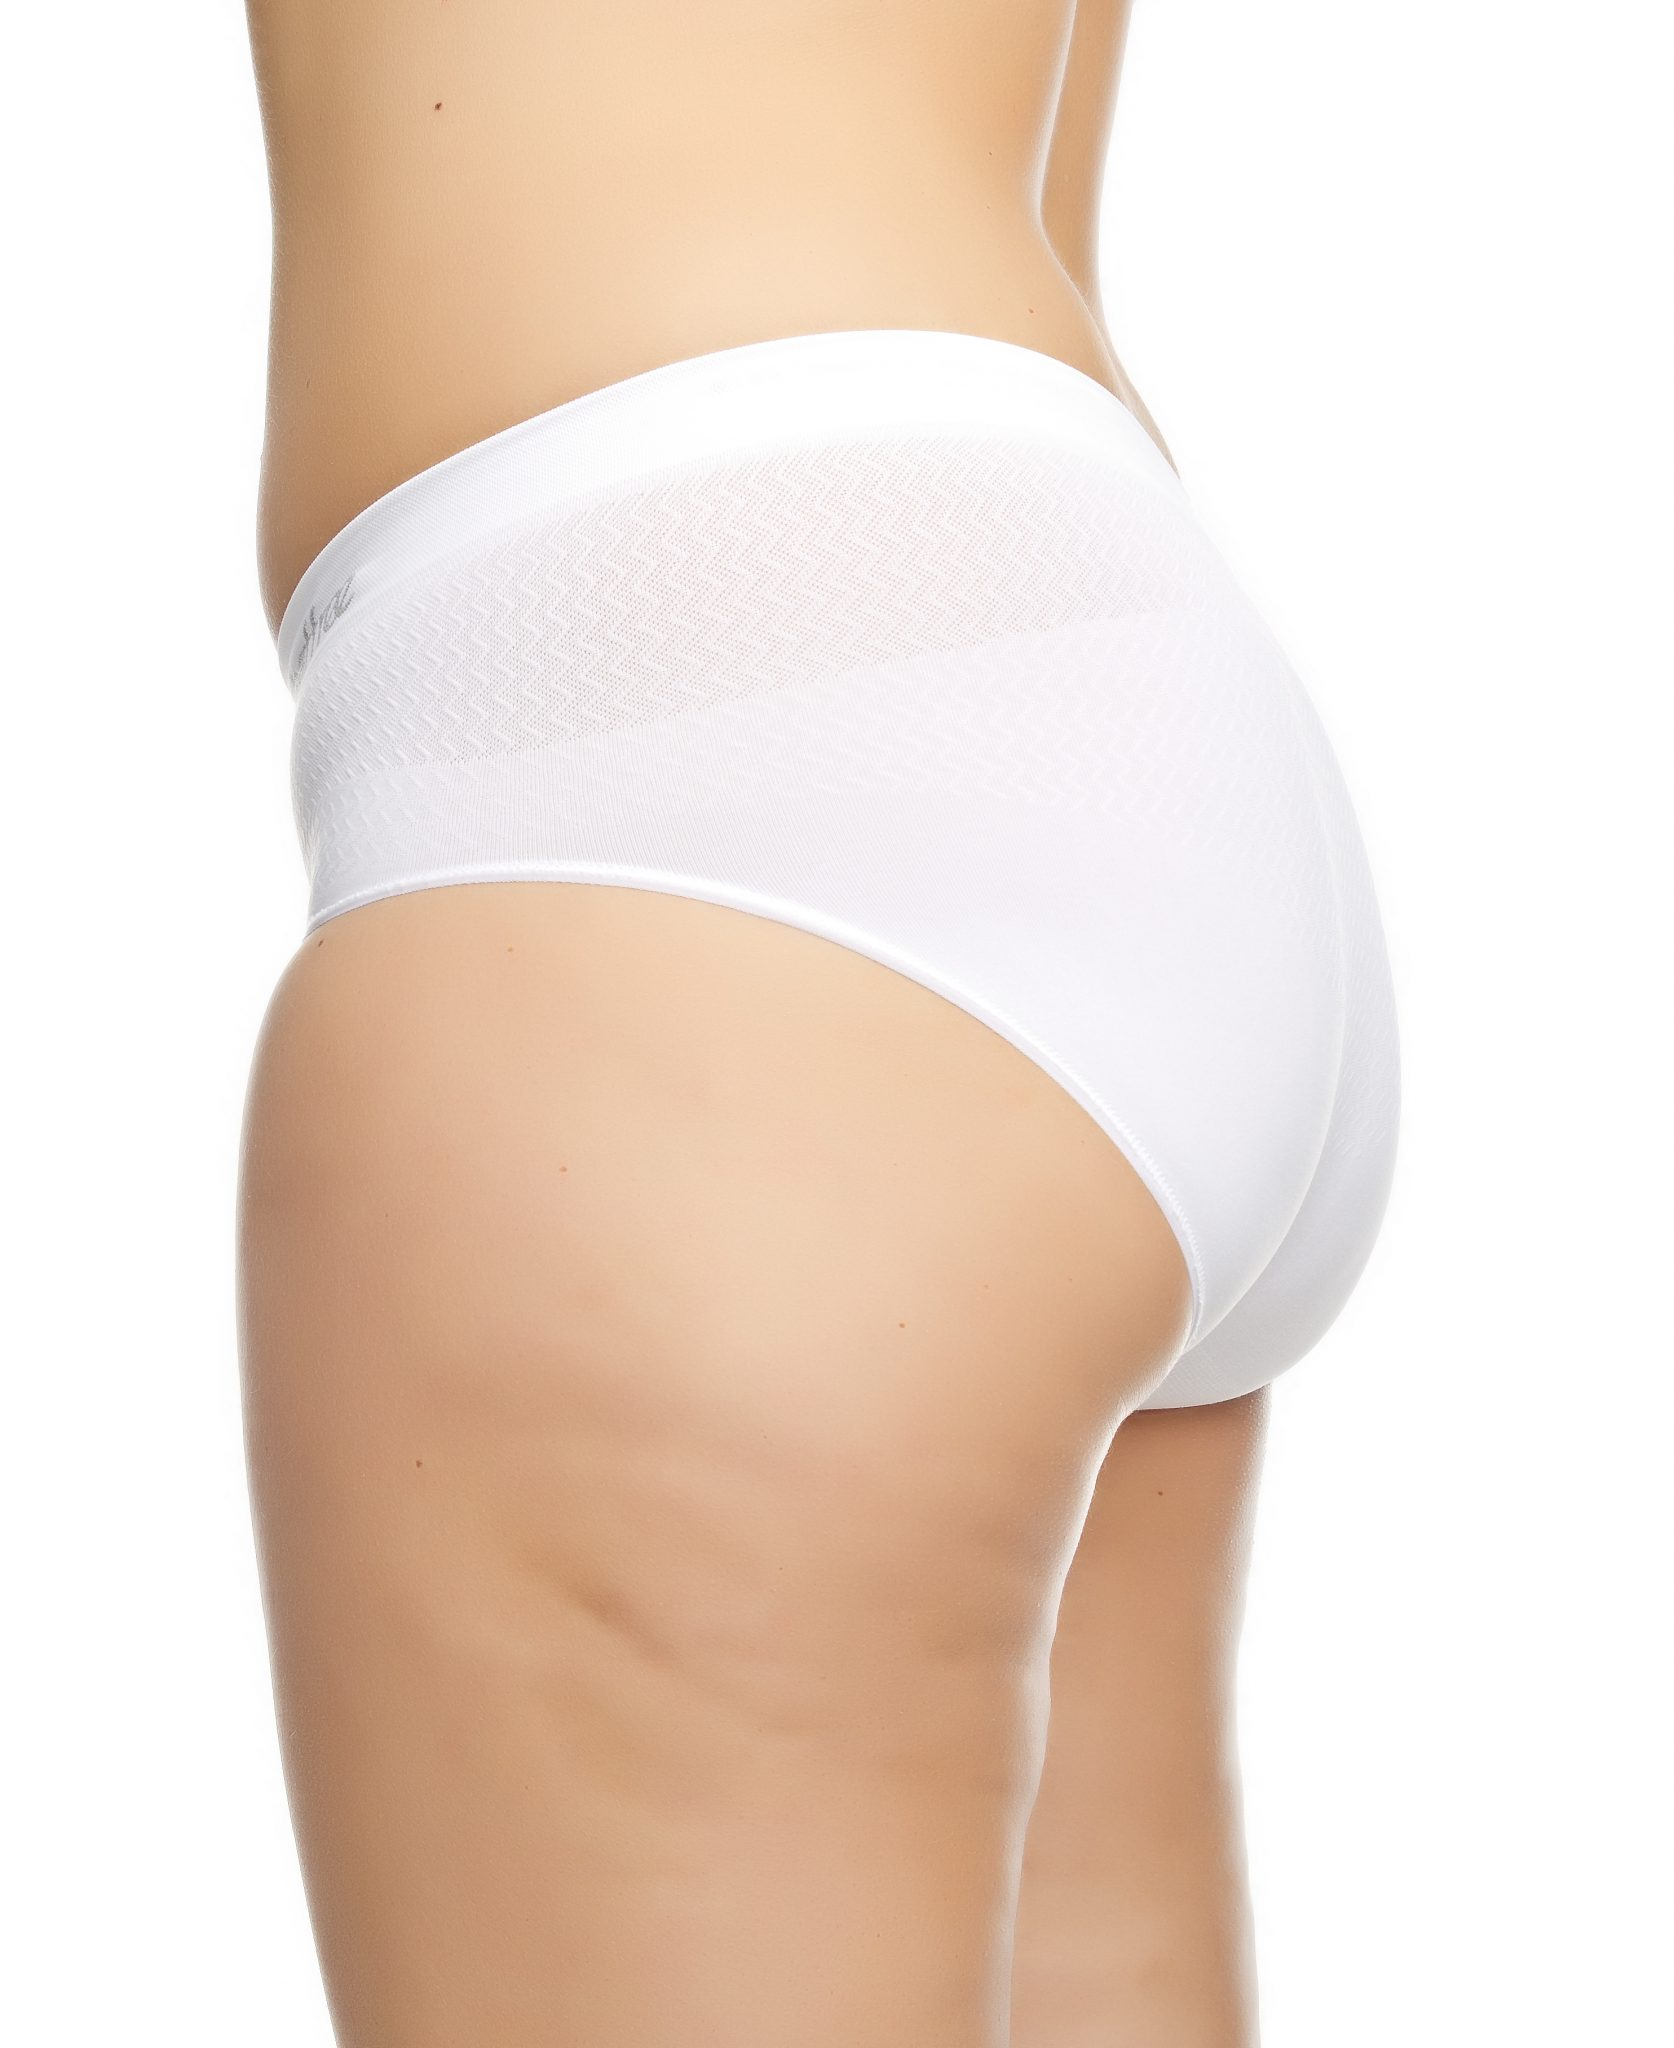 chaffree white midi waist briefs